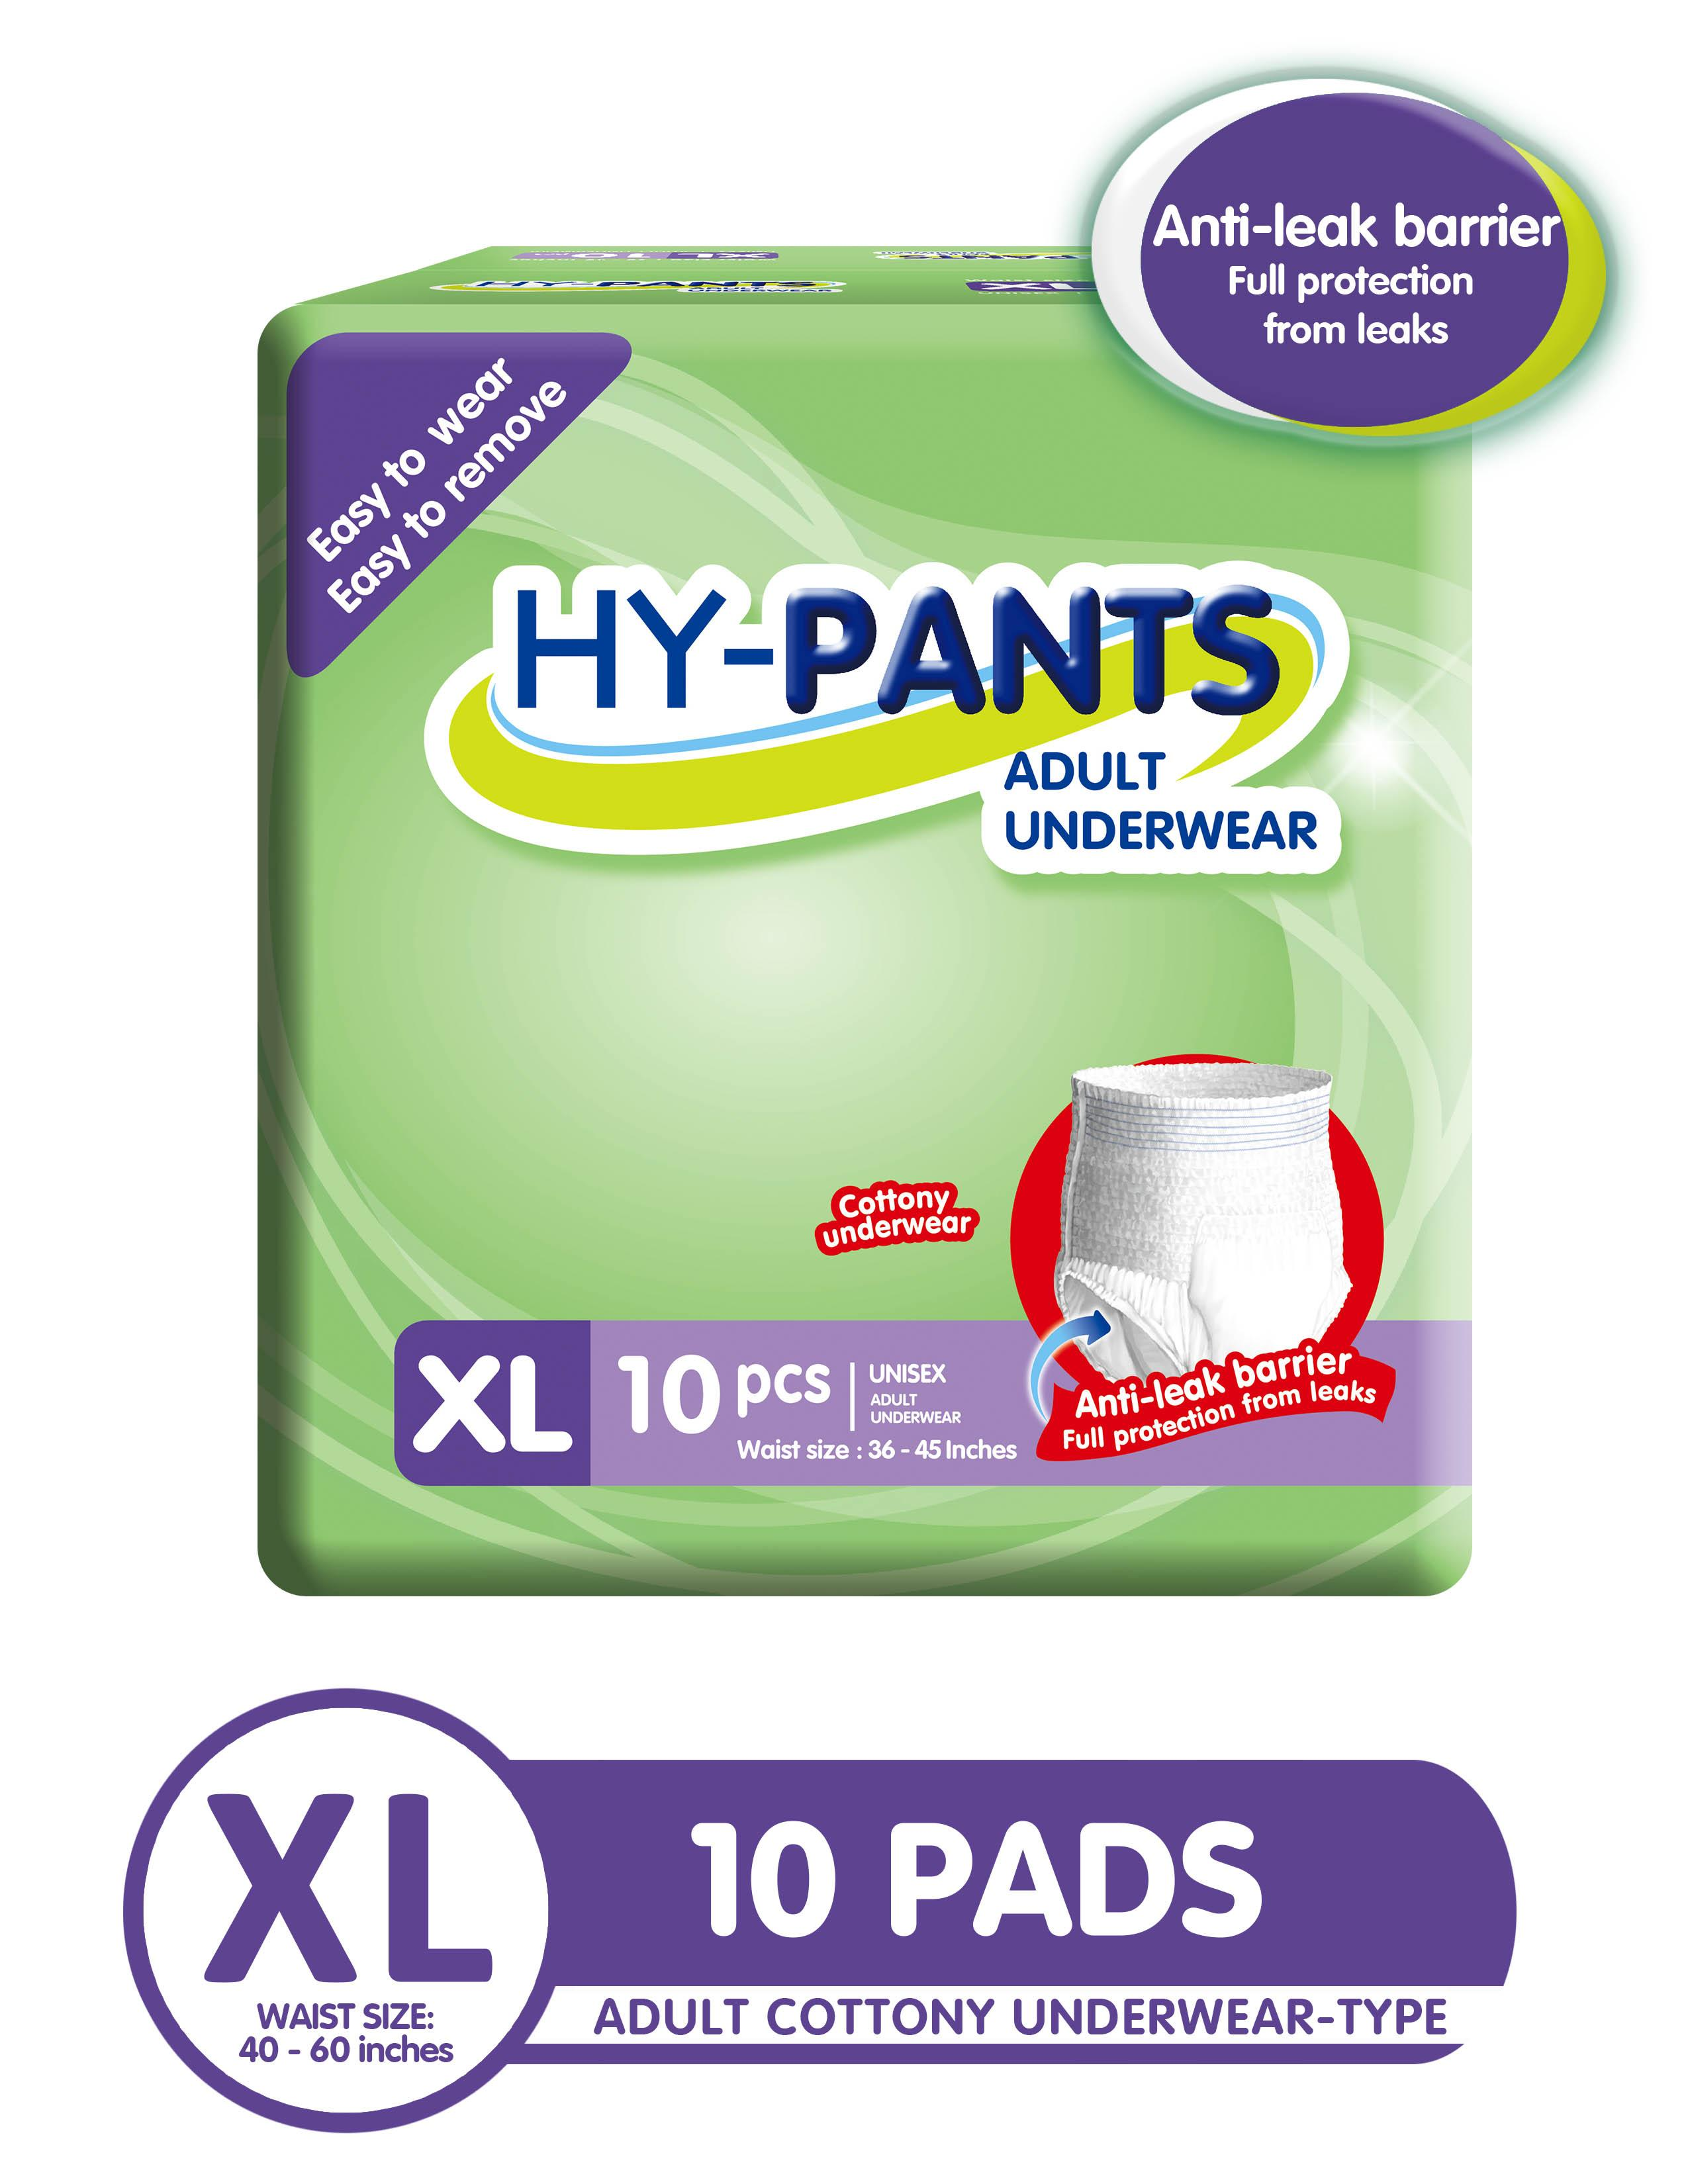 Hy-pants Adult Underwear Extra Large - 1 Pack of 10 Pads